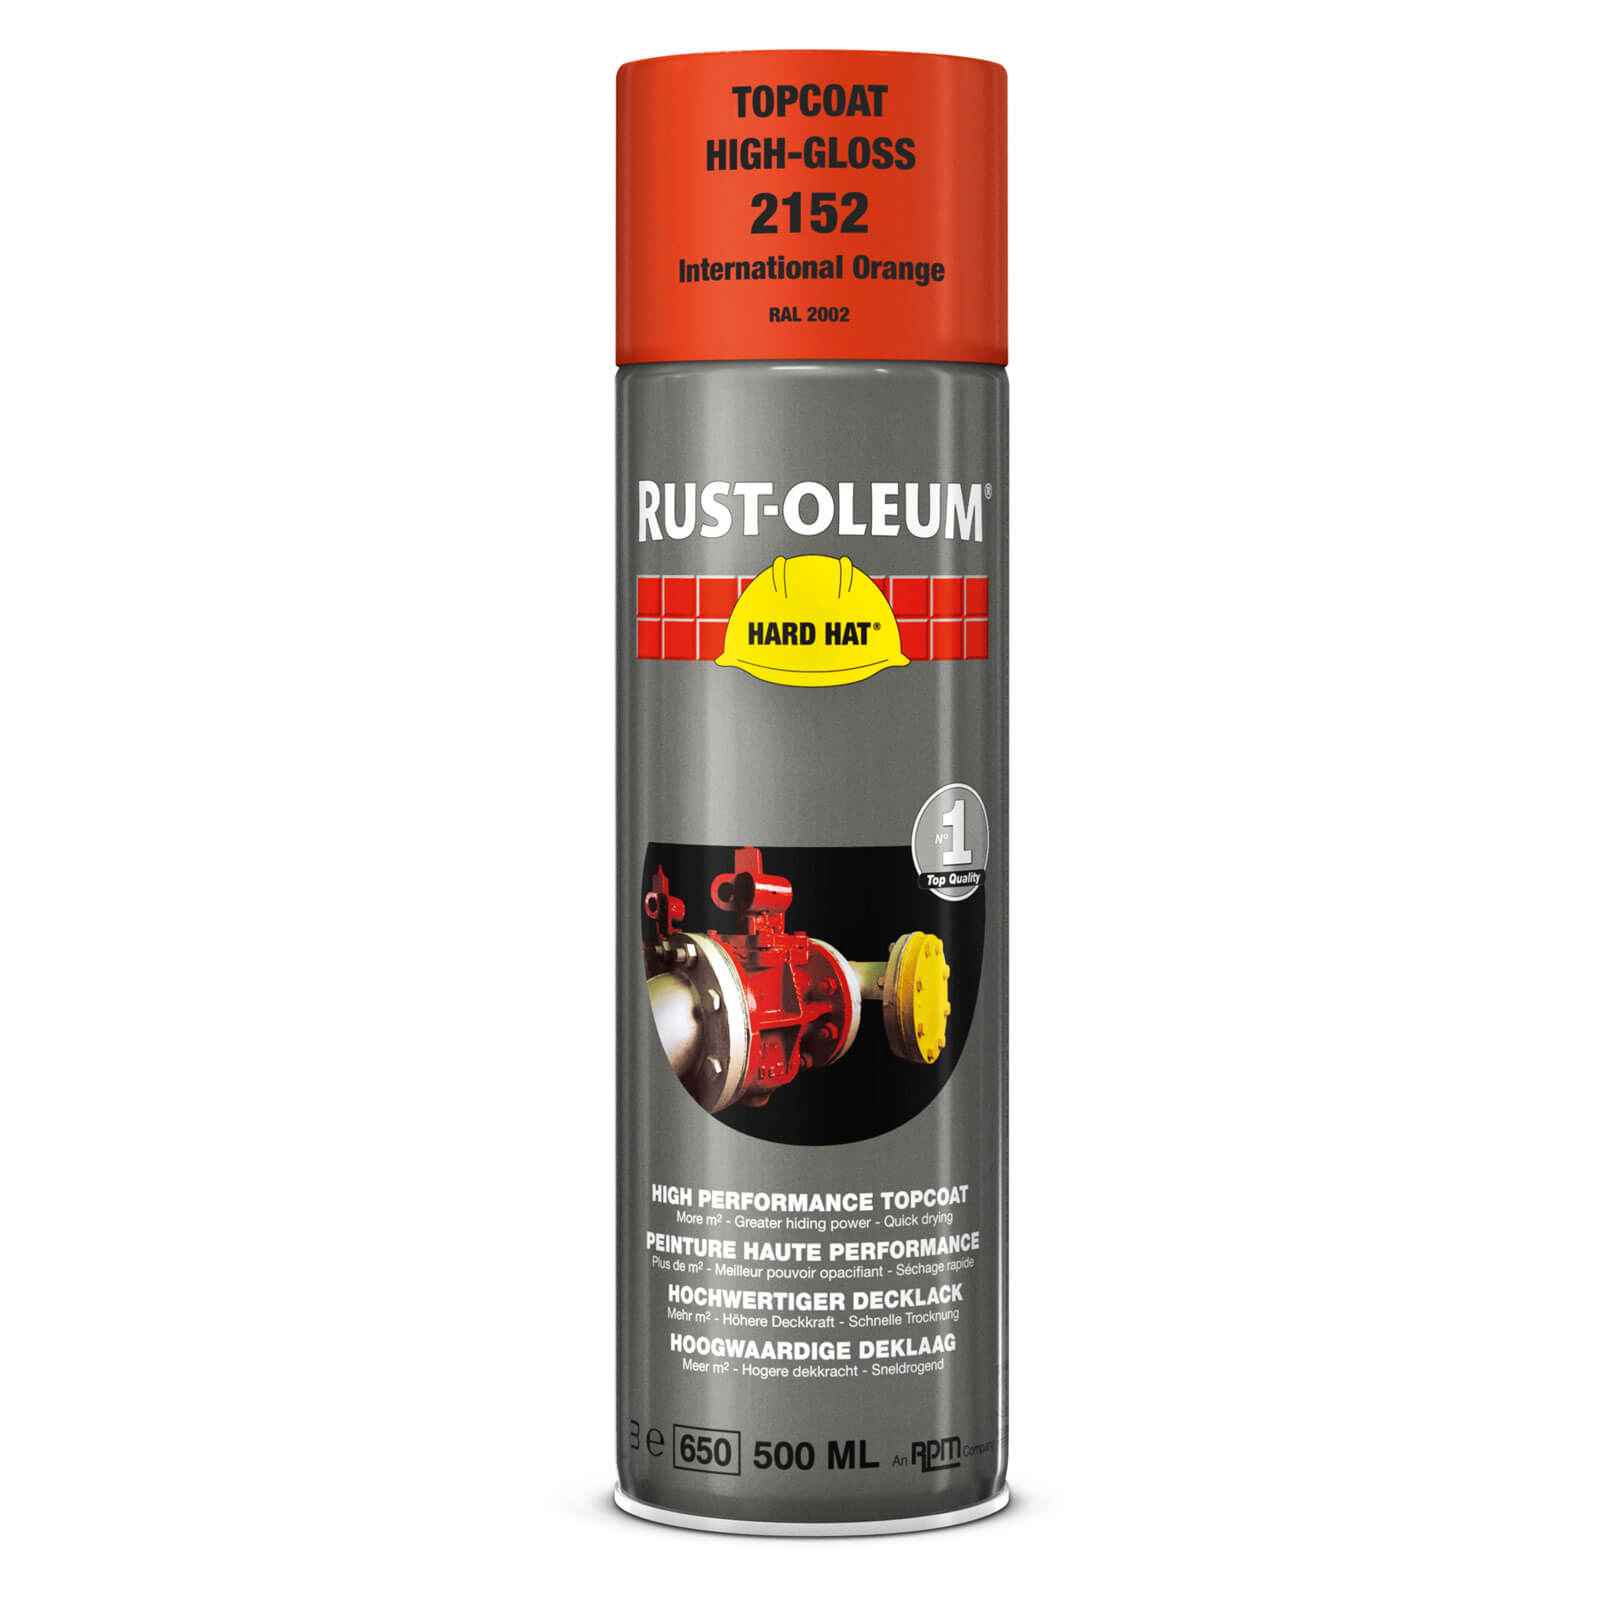 Aerosol Spray Paints Tooledupcom Furniture Online